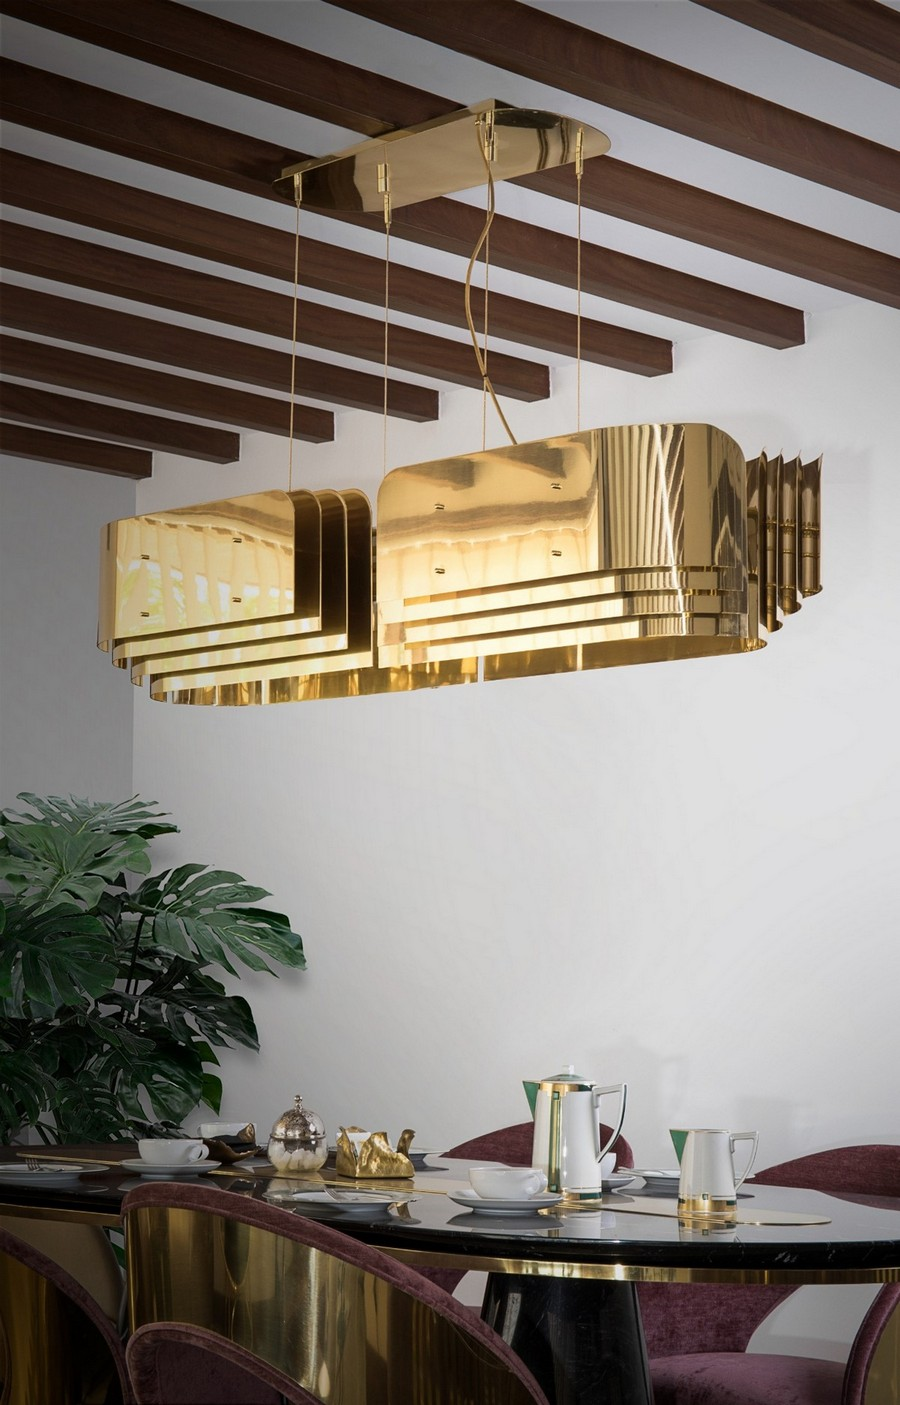 Inspire Yourself with these Amazing Lighting Products lighting products Inspire Yourself with these Amazing Lighting Products Inspire Yourself with these Amazing Lighting Products 1